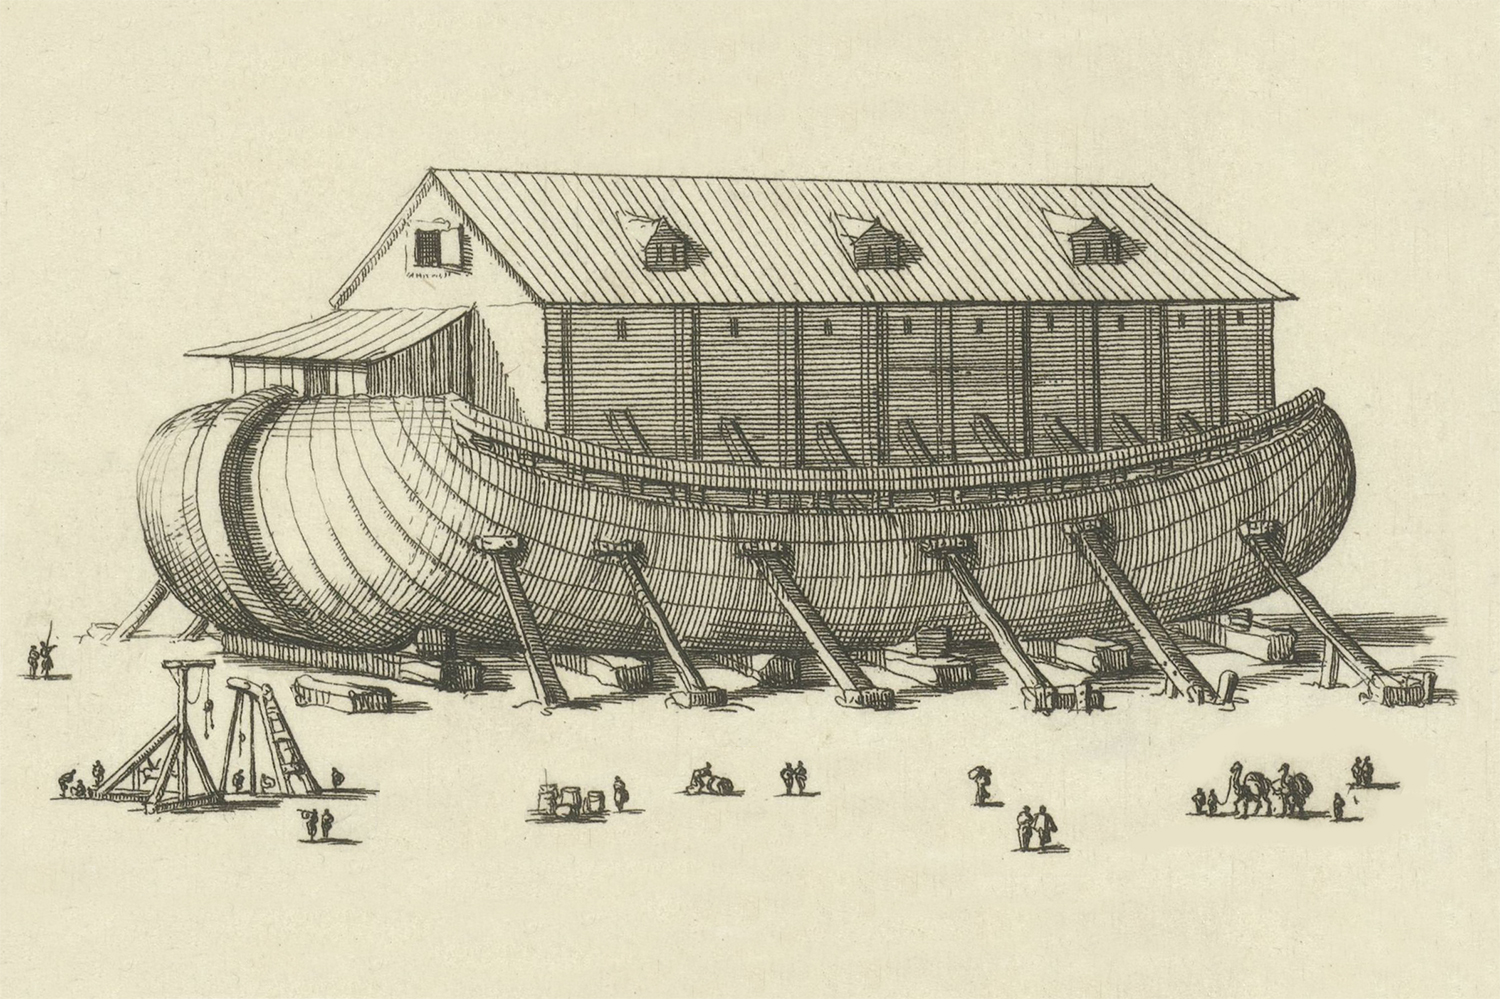 Engraving of Noah's Ark